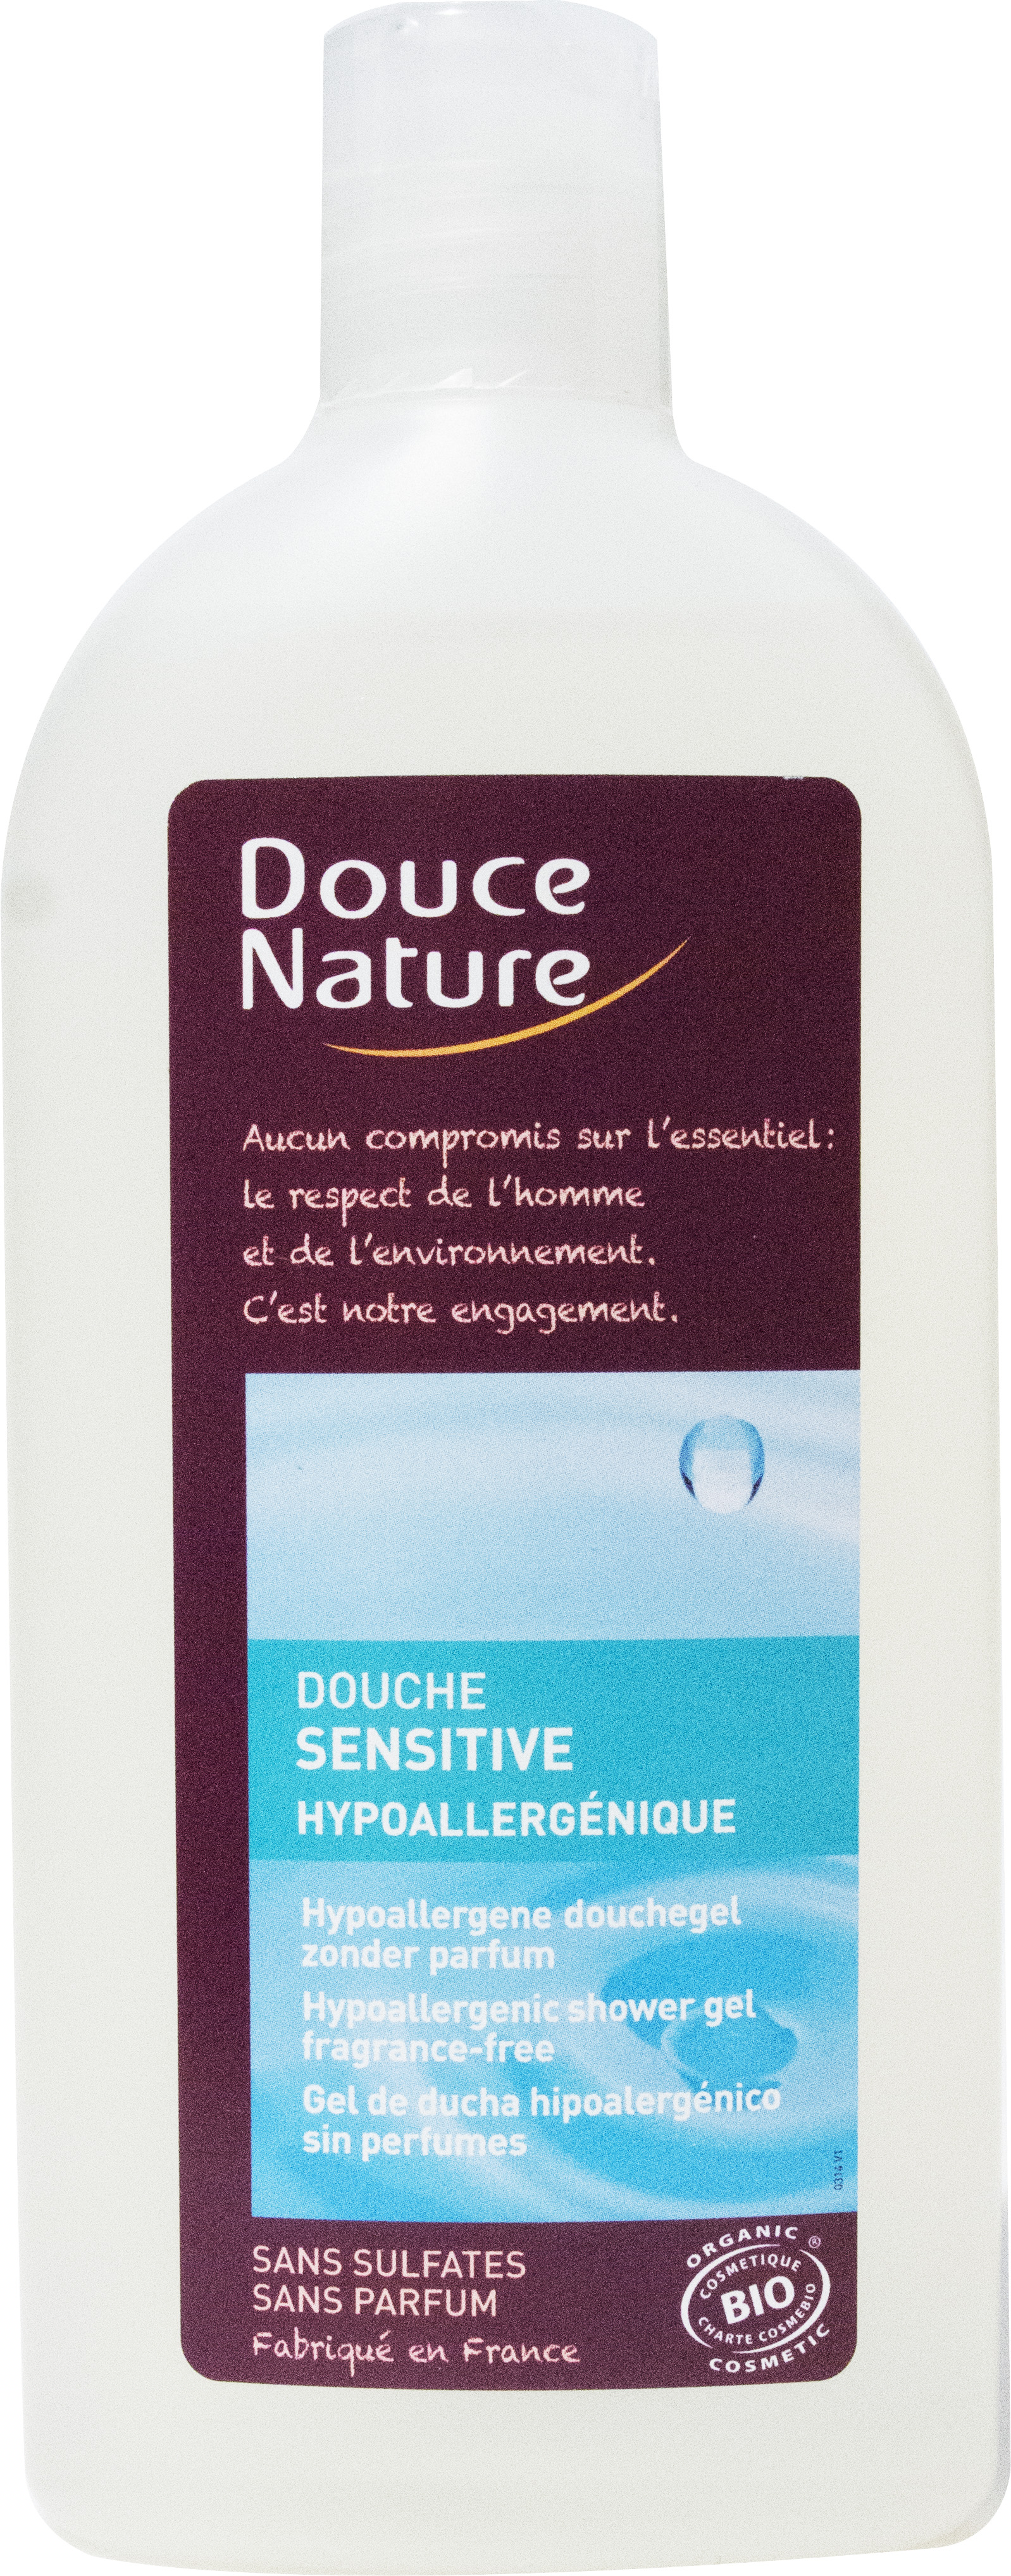 Douche Sensitive Hypoallergénique, Douce Nature (300 ml)